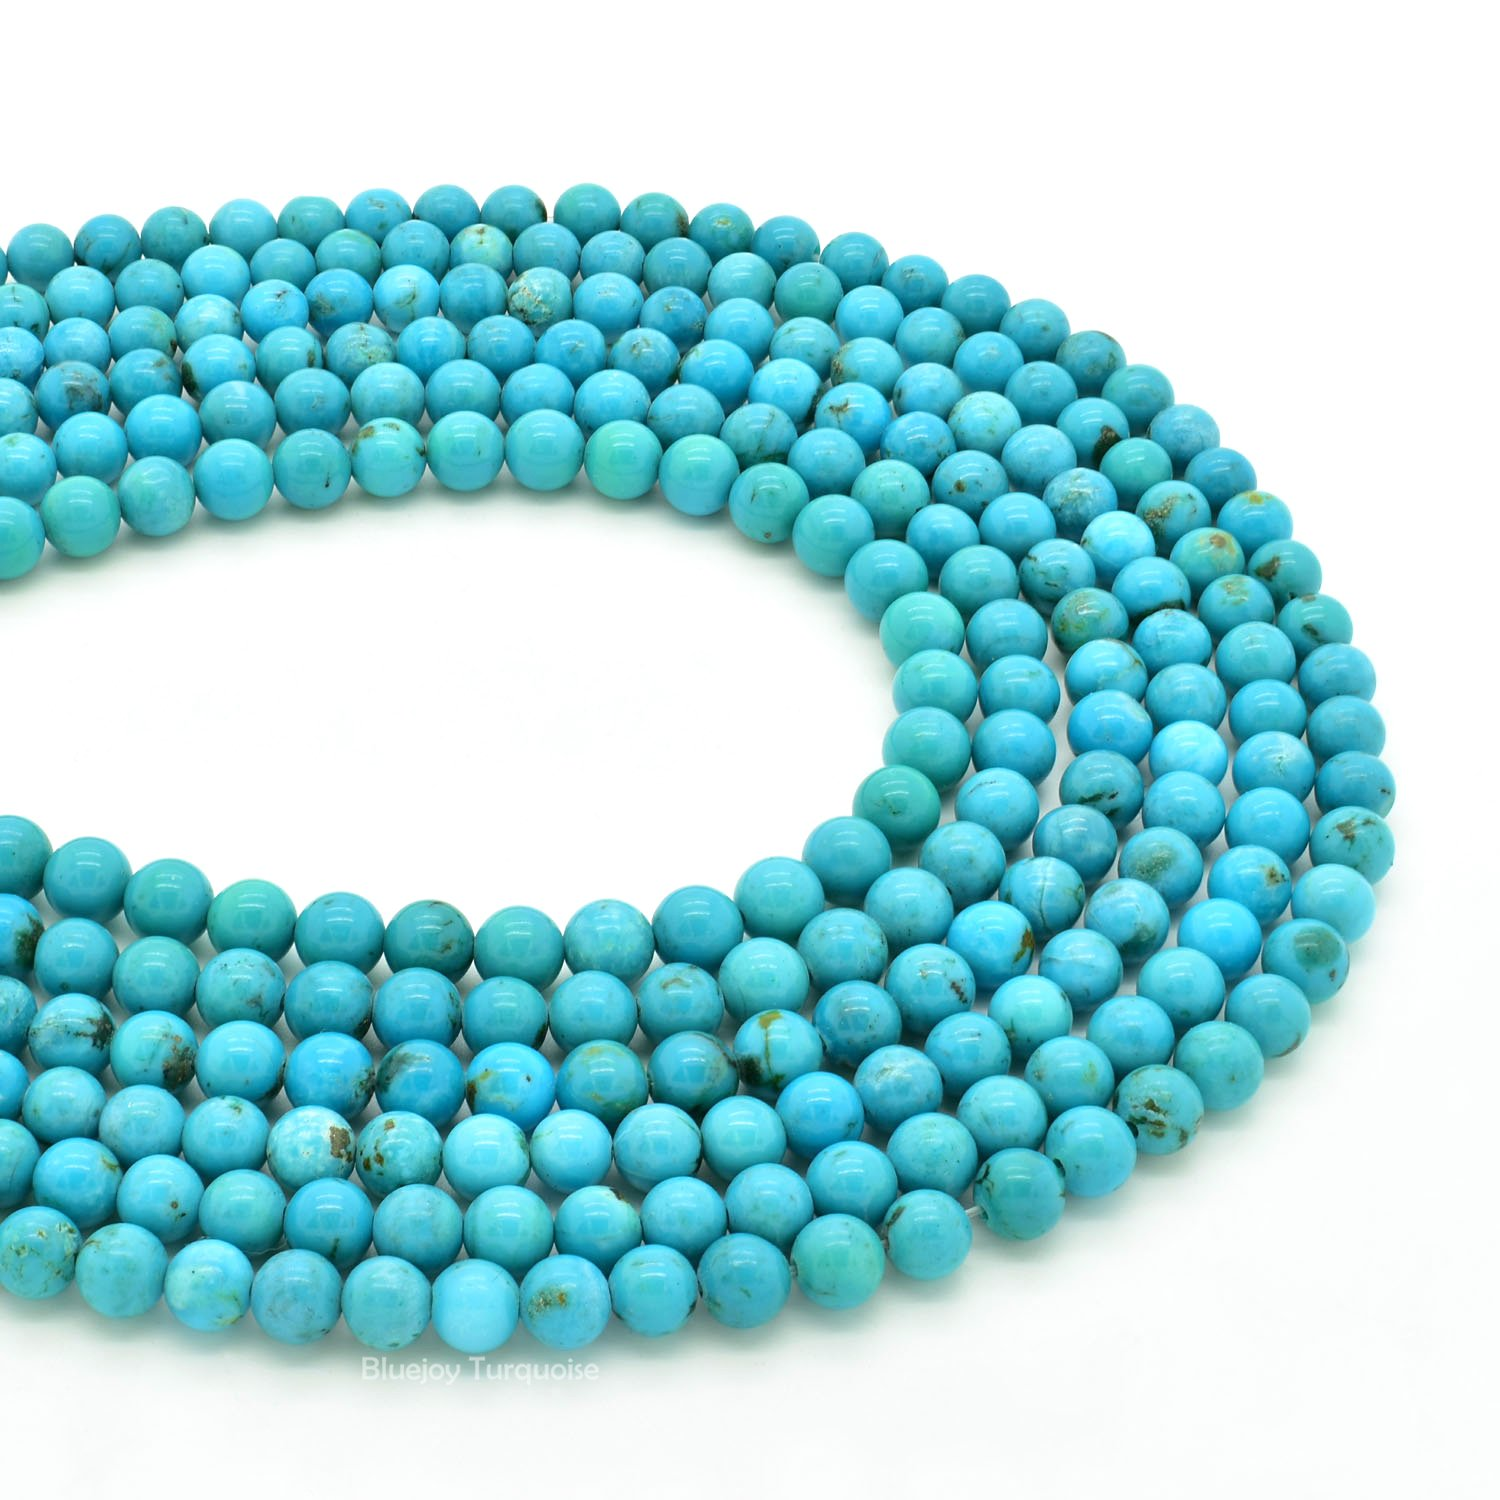 Bluejoy Genuine Natural American Turquoise Round Bead 16 inch Strand for Jewelry Making (5mm) by Bluejoy Turquoise